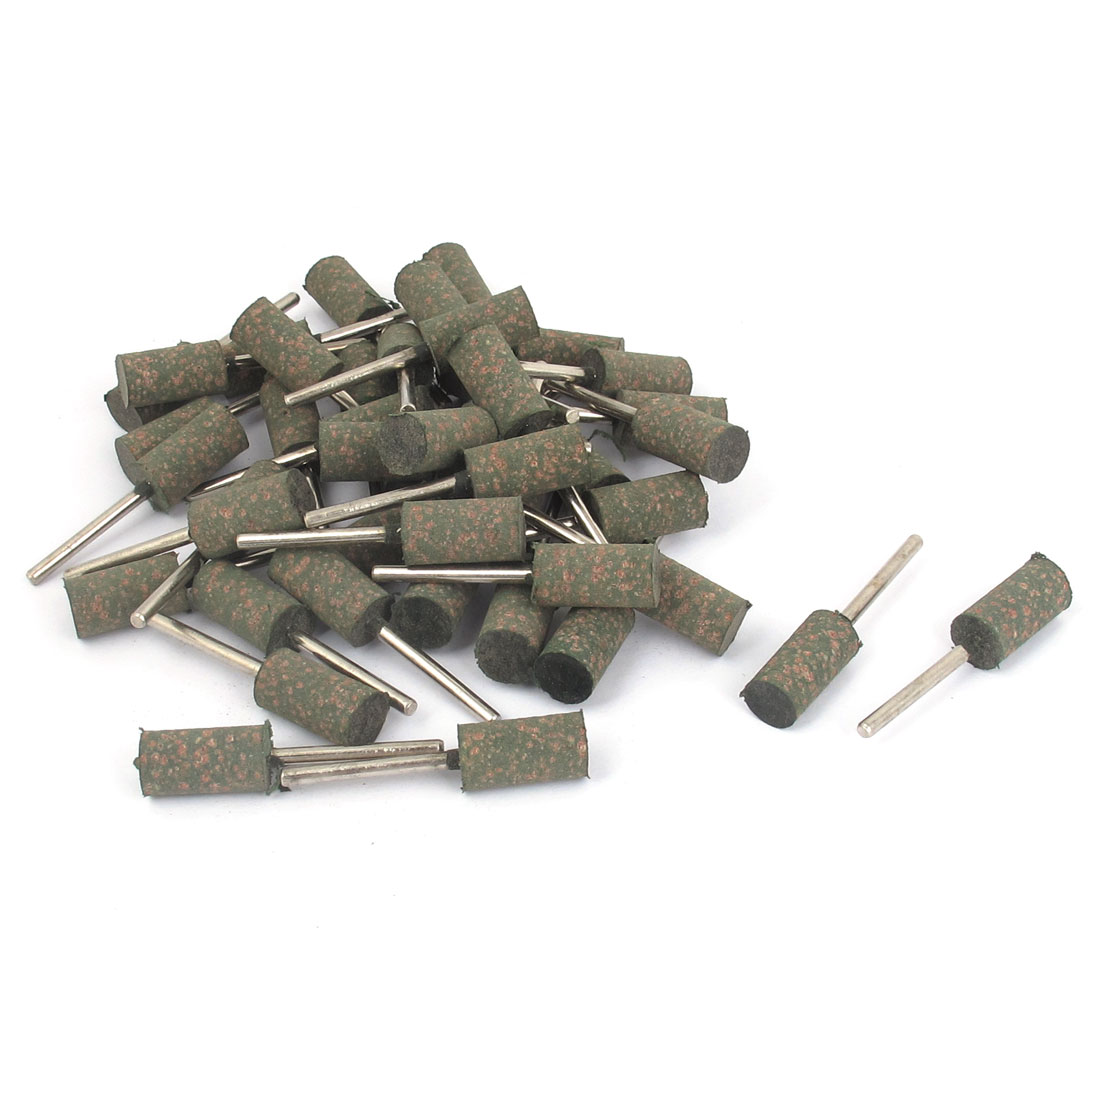 50pcs 9mm x 19mm Cylinder Head Grinding Sanding Polishing Polish Wheel Mounted Point